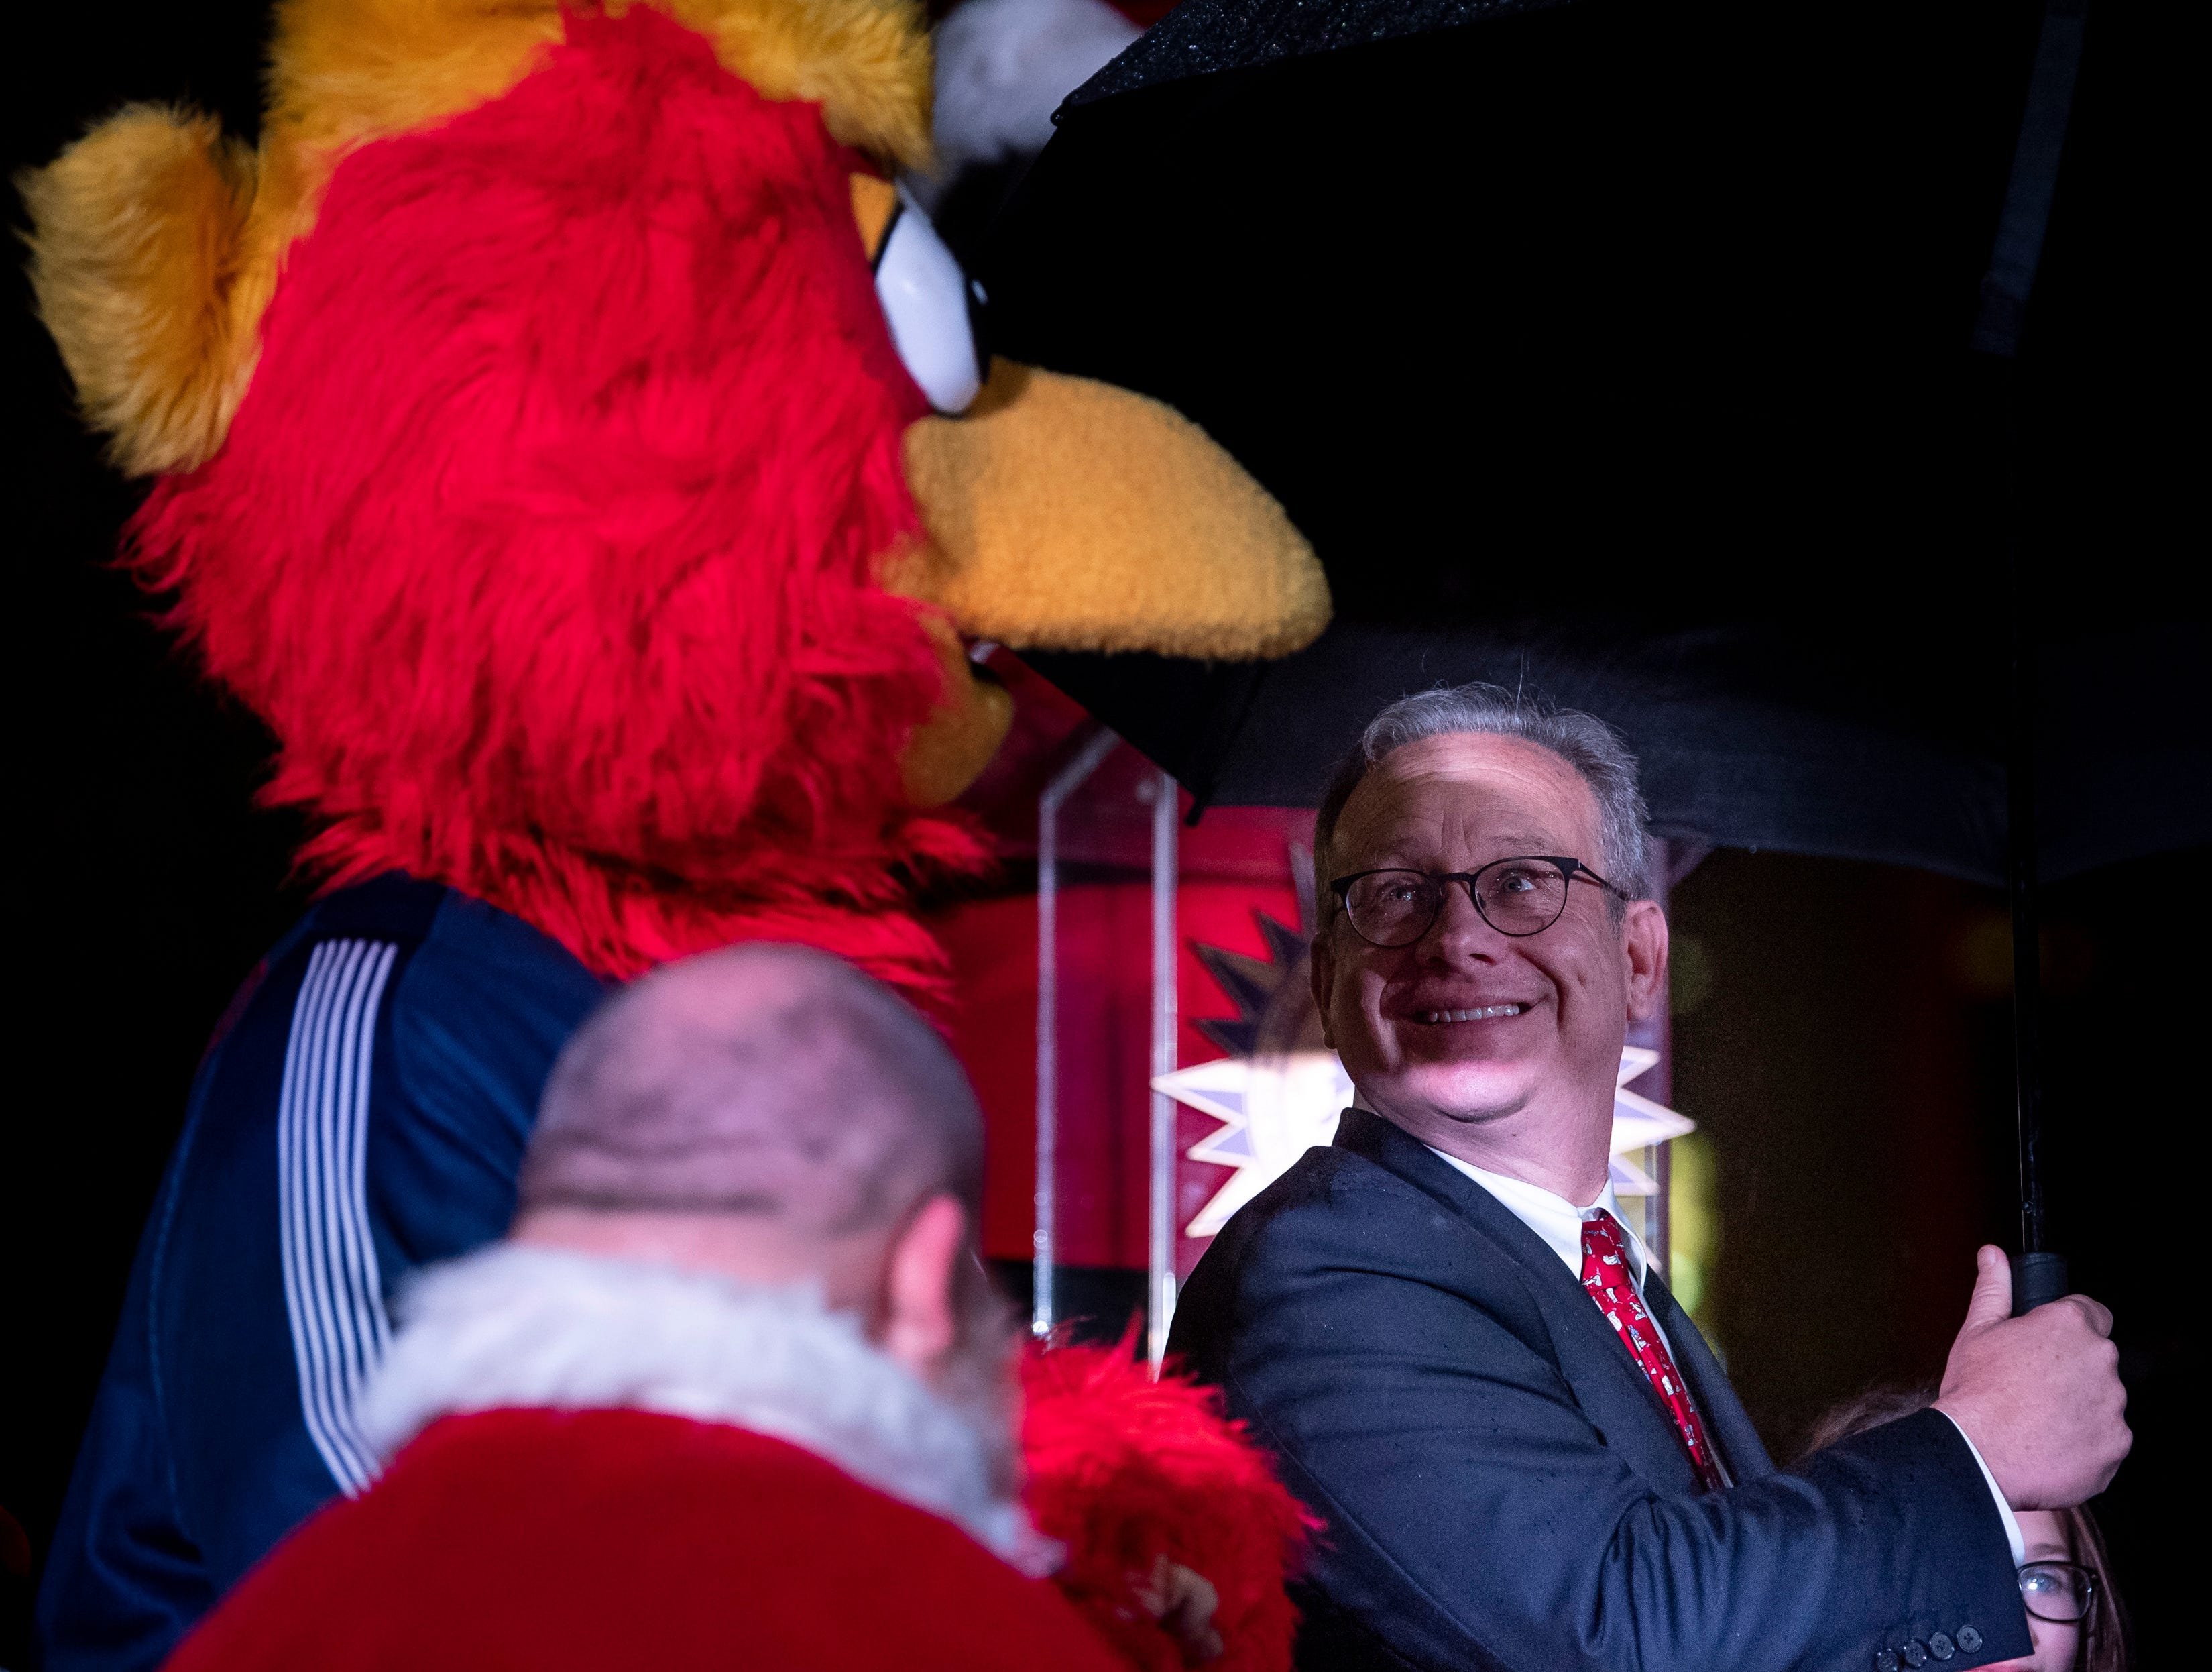 Nashville Mayor David Briley shares a moment with Booster, the Nashville Sounds' mascot, during the Metro Nashville Christmas Tree Lighting event at Public Square Park in Nashville, Tenn., Friday, Nov. 30, 2018.